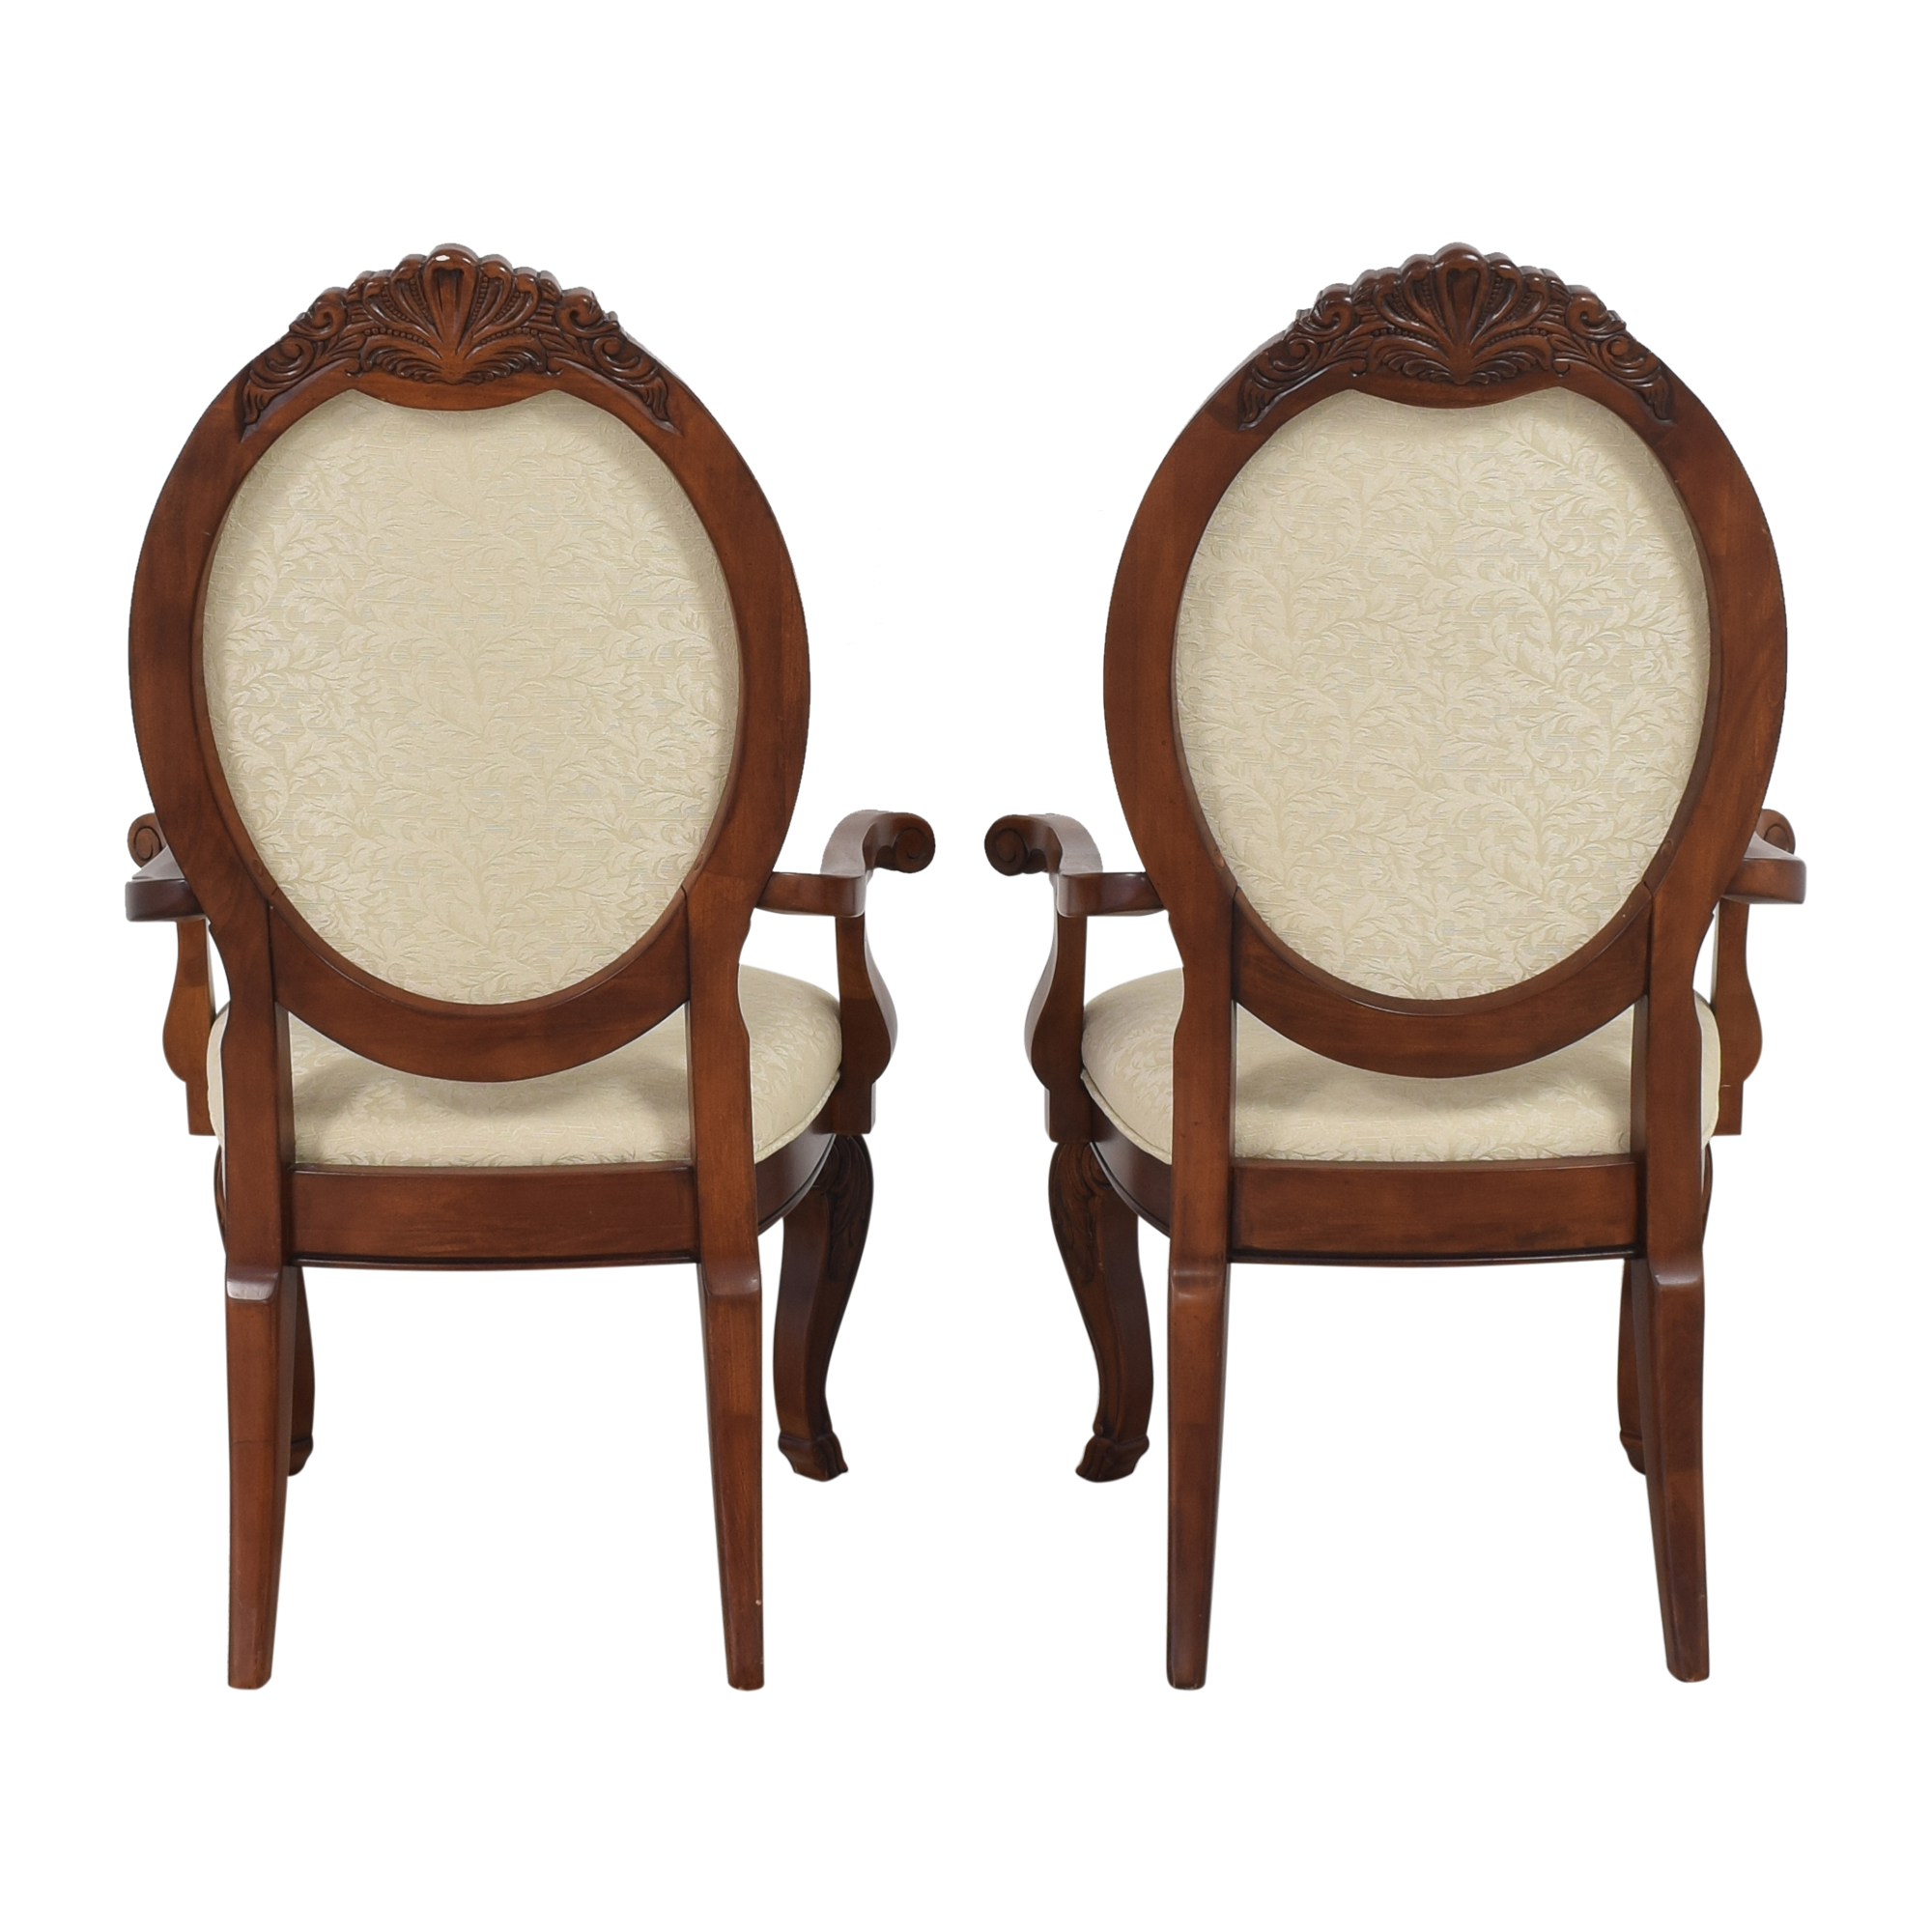 Raymour & Flanigan Raymour & Flanigan Oval Back Dining Arm Chairs coupon